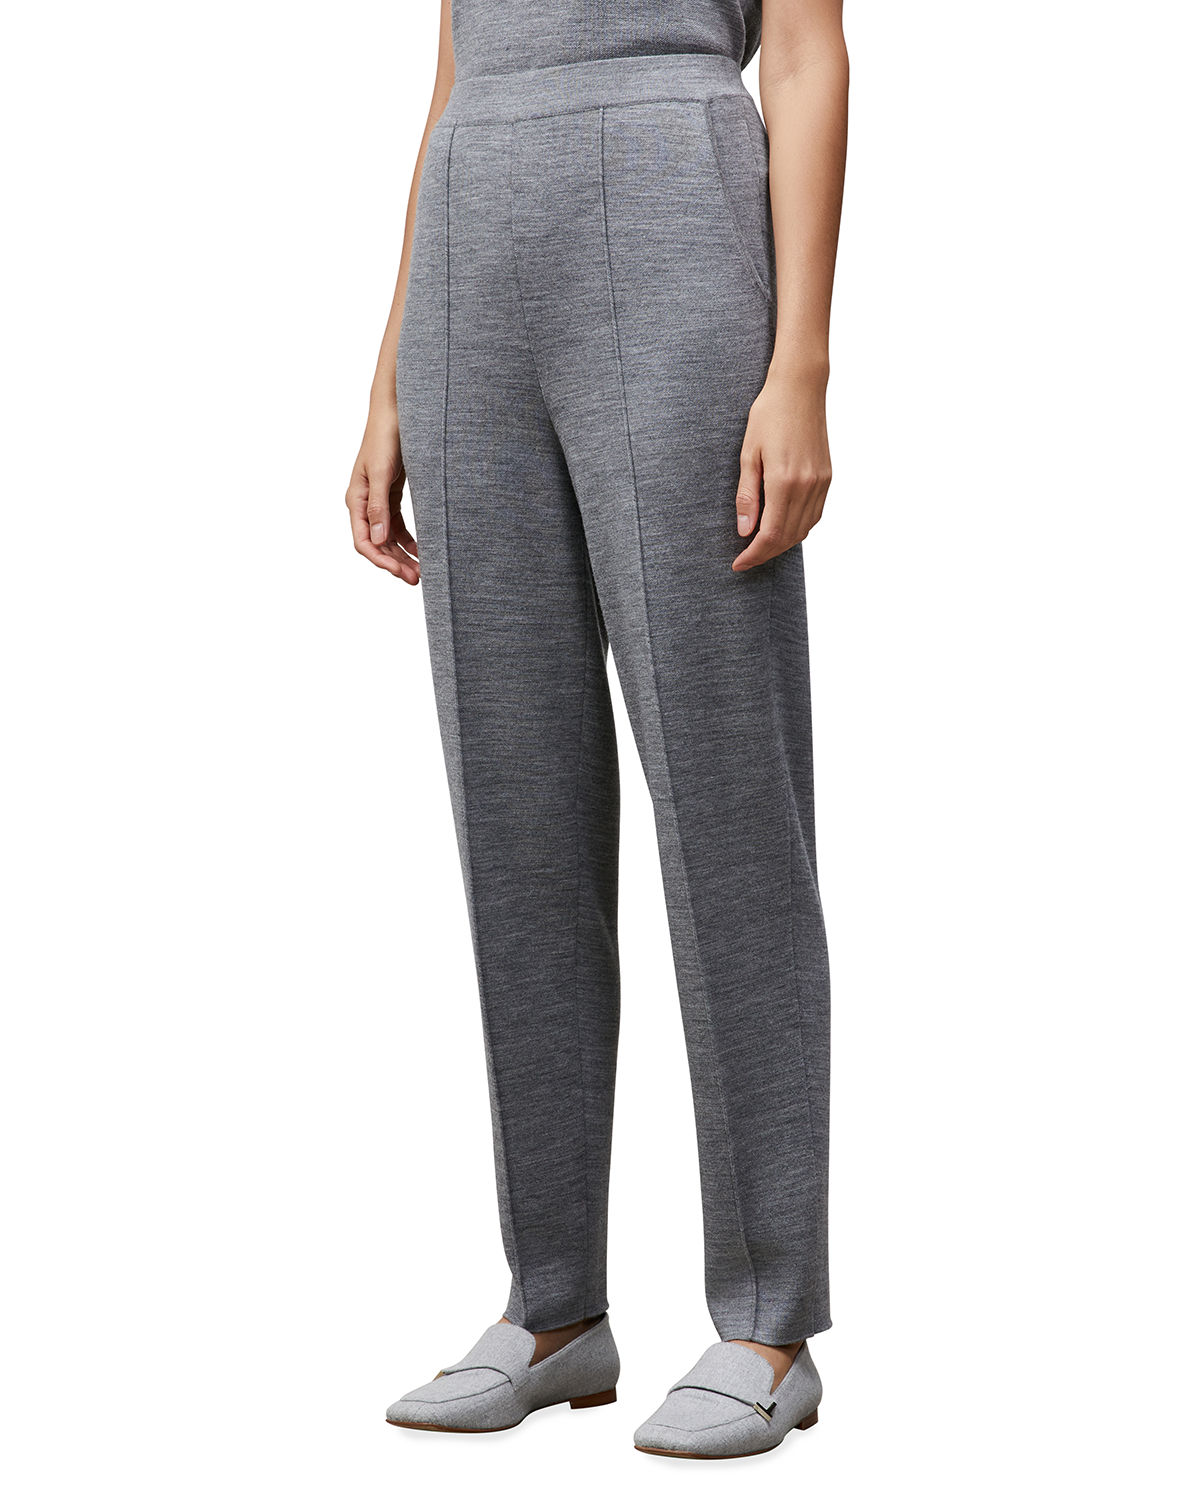 Lafayette 148 DOUBLE-KNIT TAPERED PANTS